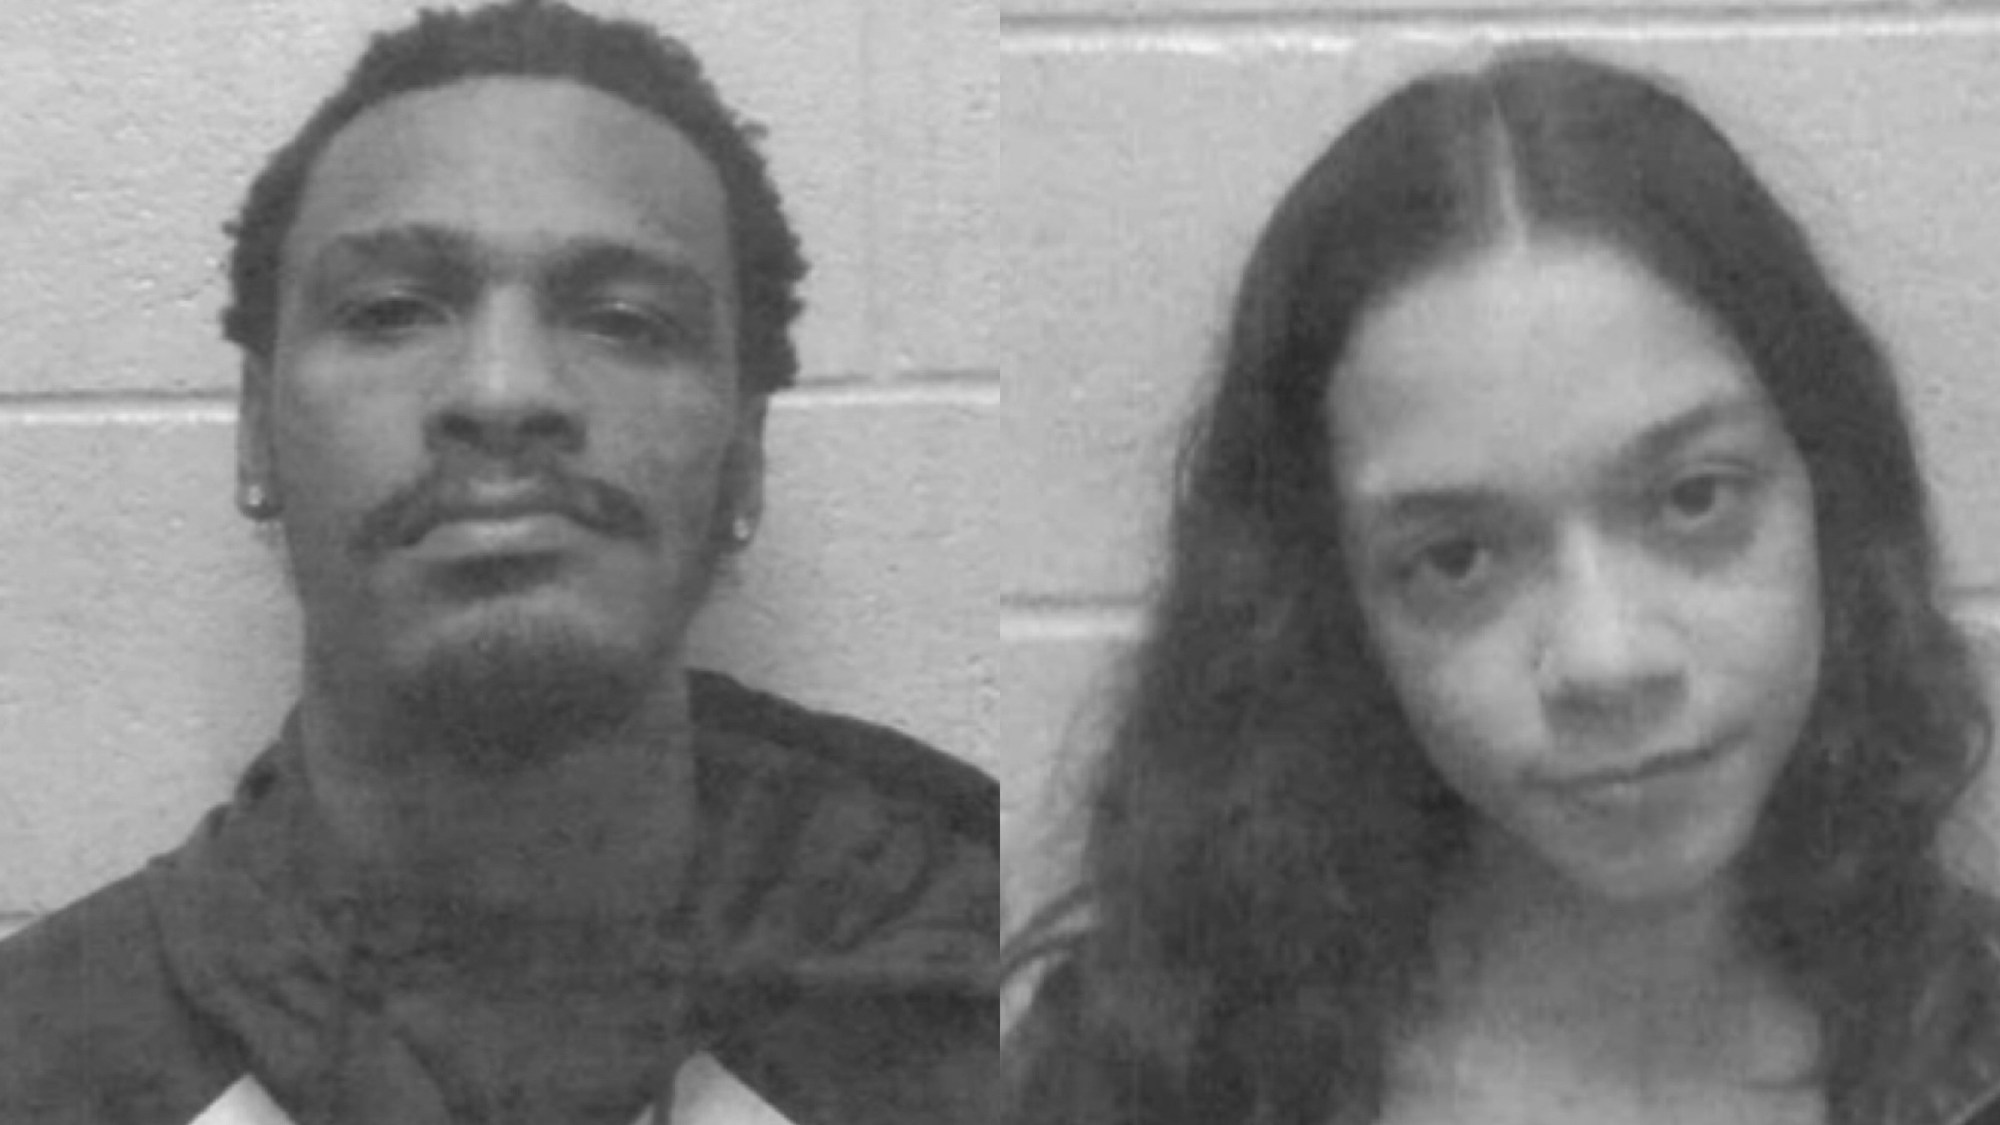 Shaquan Foreman Antoin, 25, and Dekotha Arnold, 20,